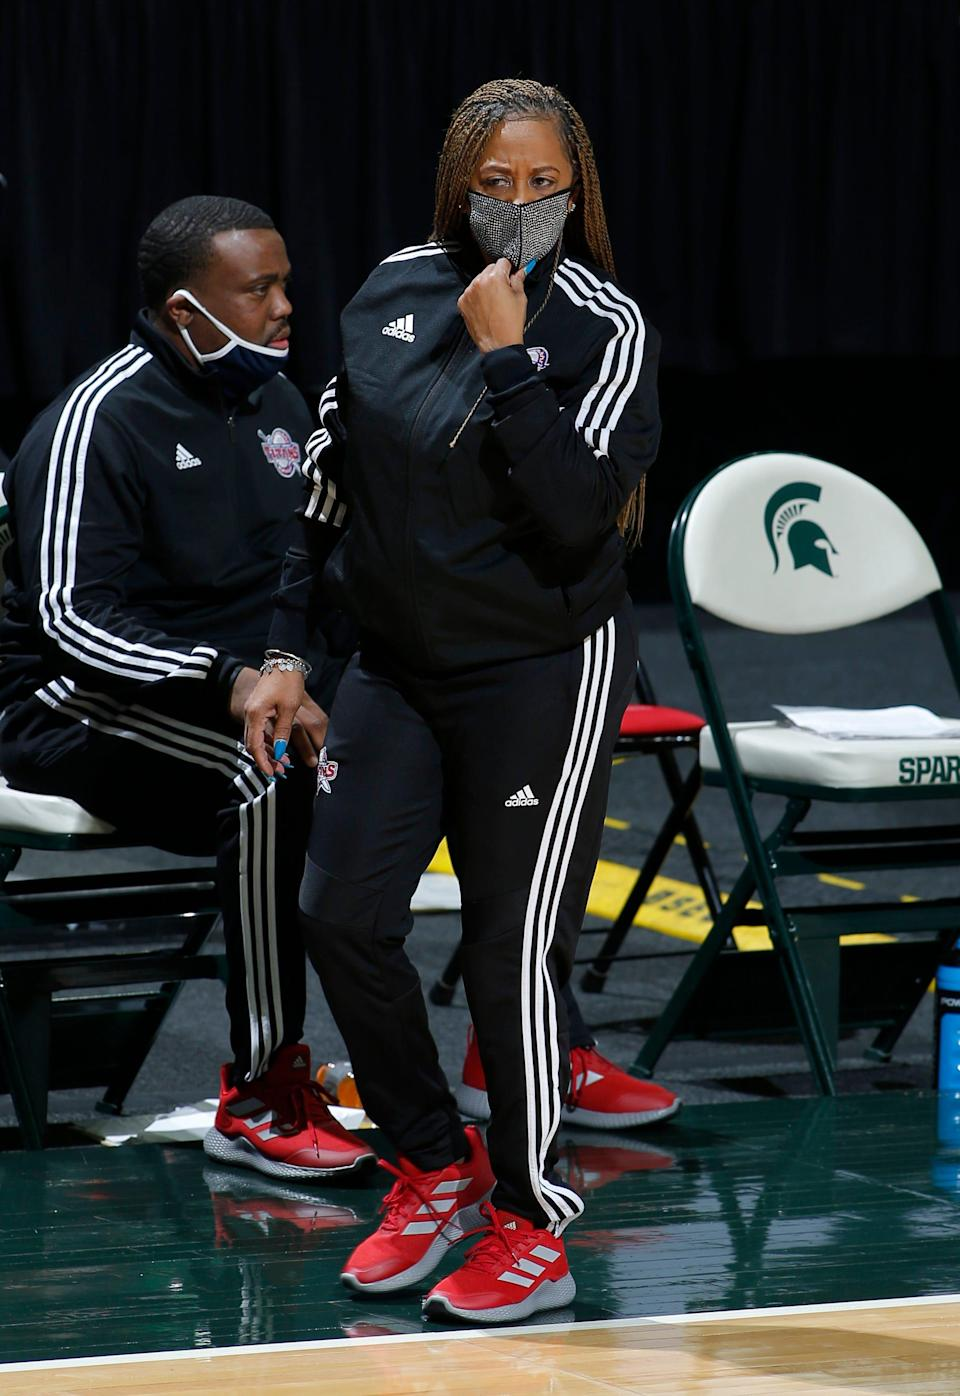 Detroit coach AnnMarie Gilbert walks the sideline against Michigan State, Wednesday, Dec. 2, 2020, in East Lansing, Mich. Michigan State won 82-45.